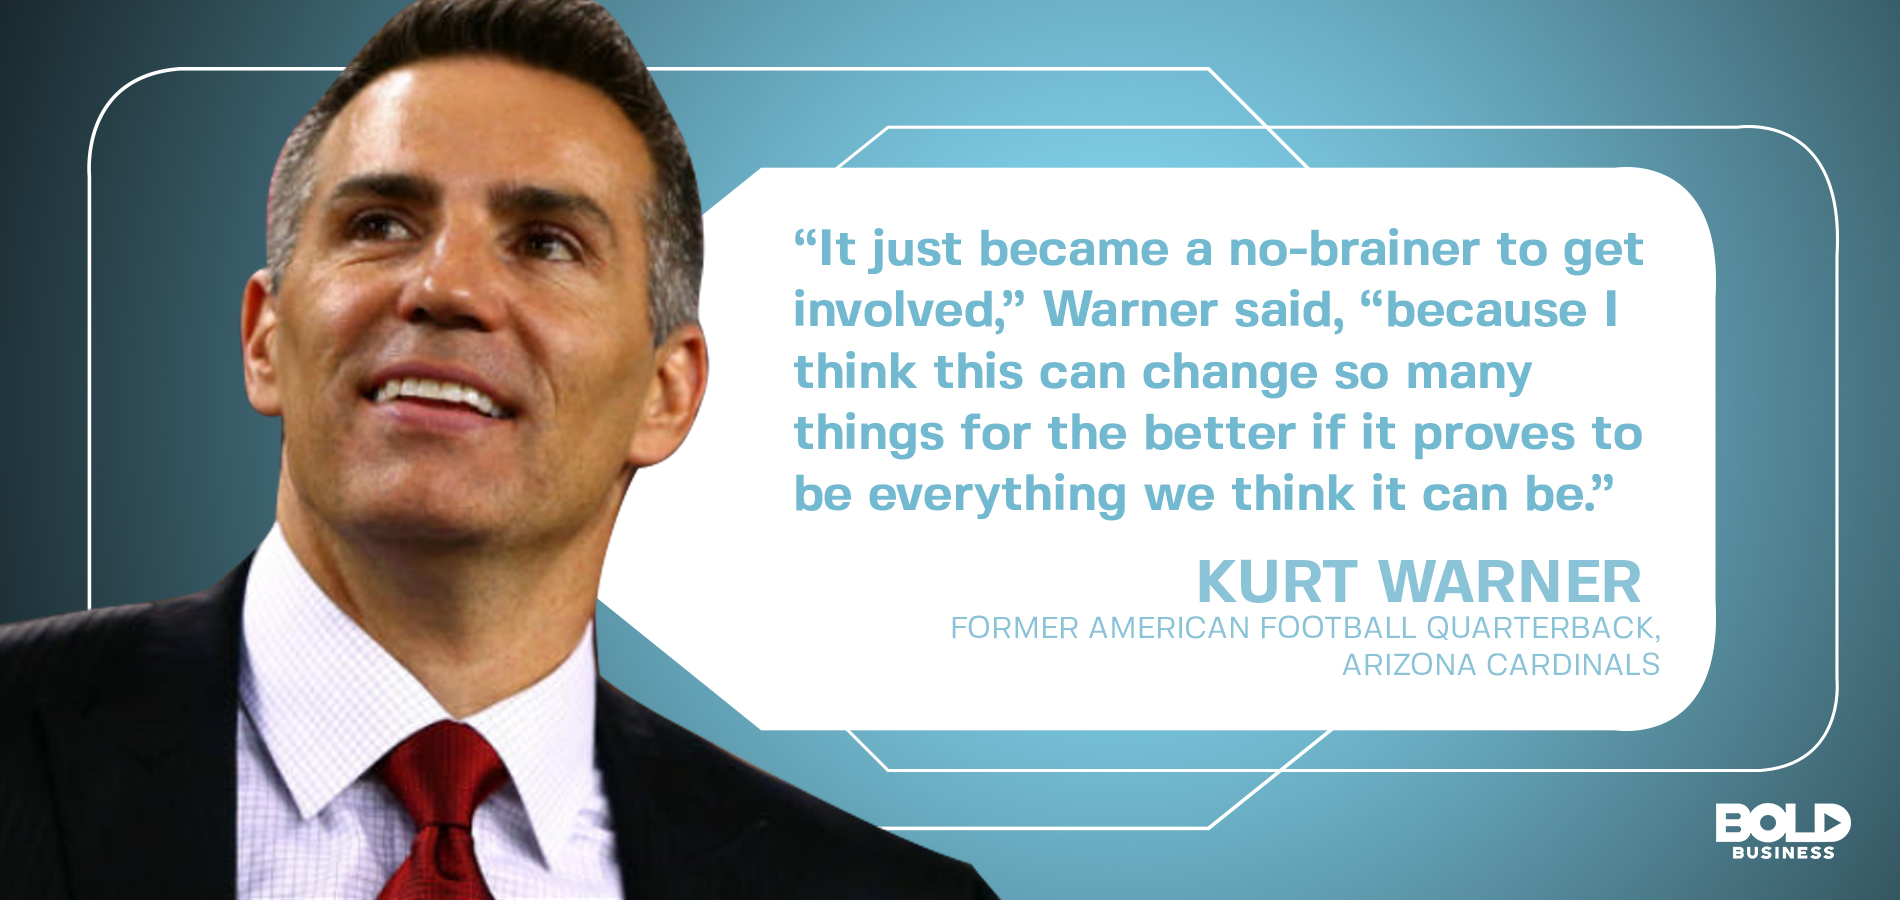 Kurt Warner is lending his support to The concussion nasal spray Prevasol which may be the next step in tackling CTE.